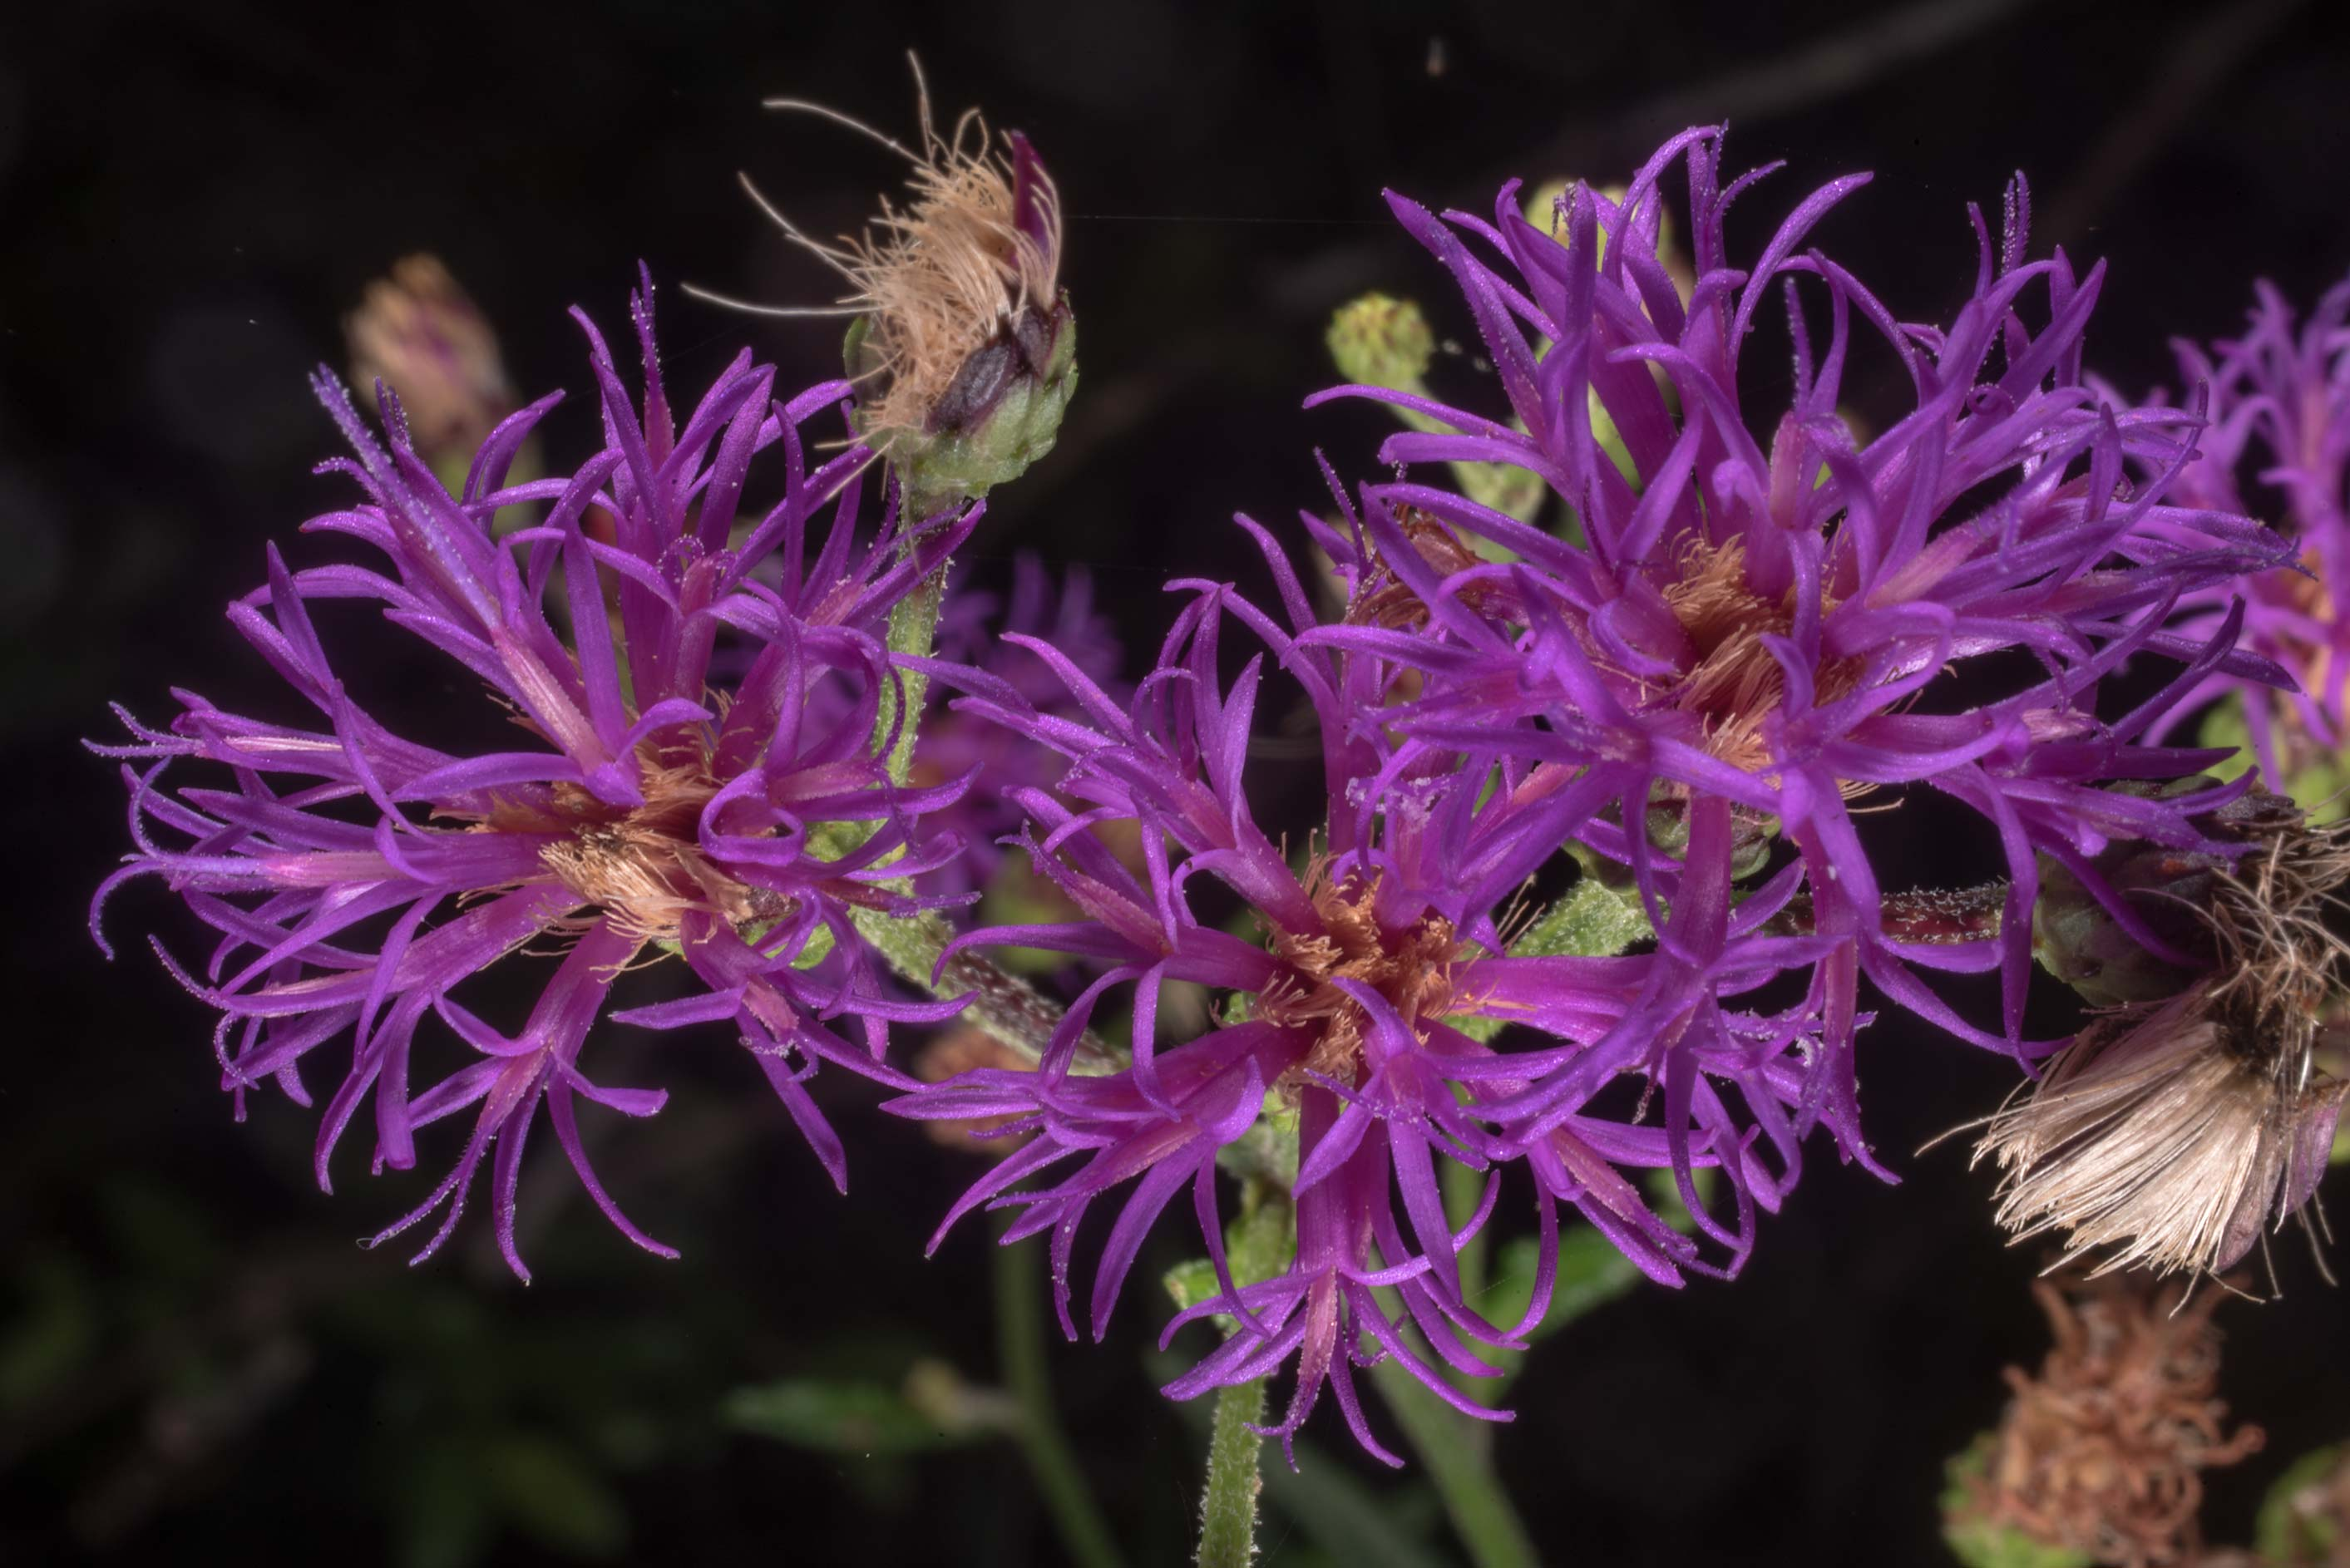 Western ironweed (Vernonia baldwini) on Lone Star...National Forest. Richards, Texas